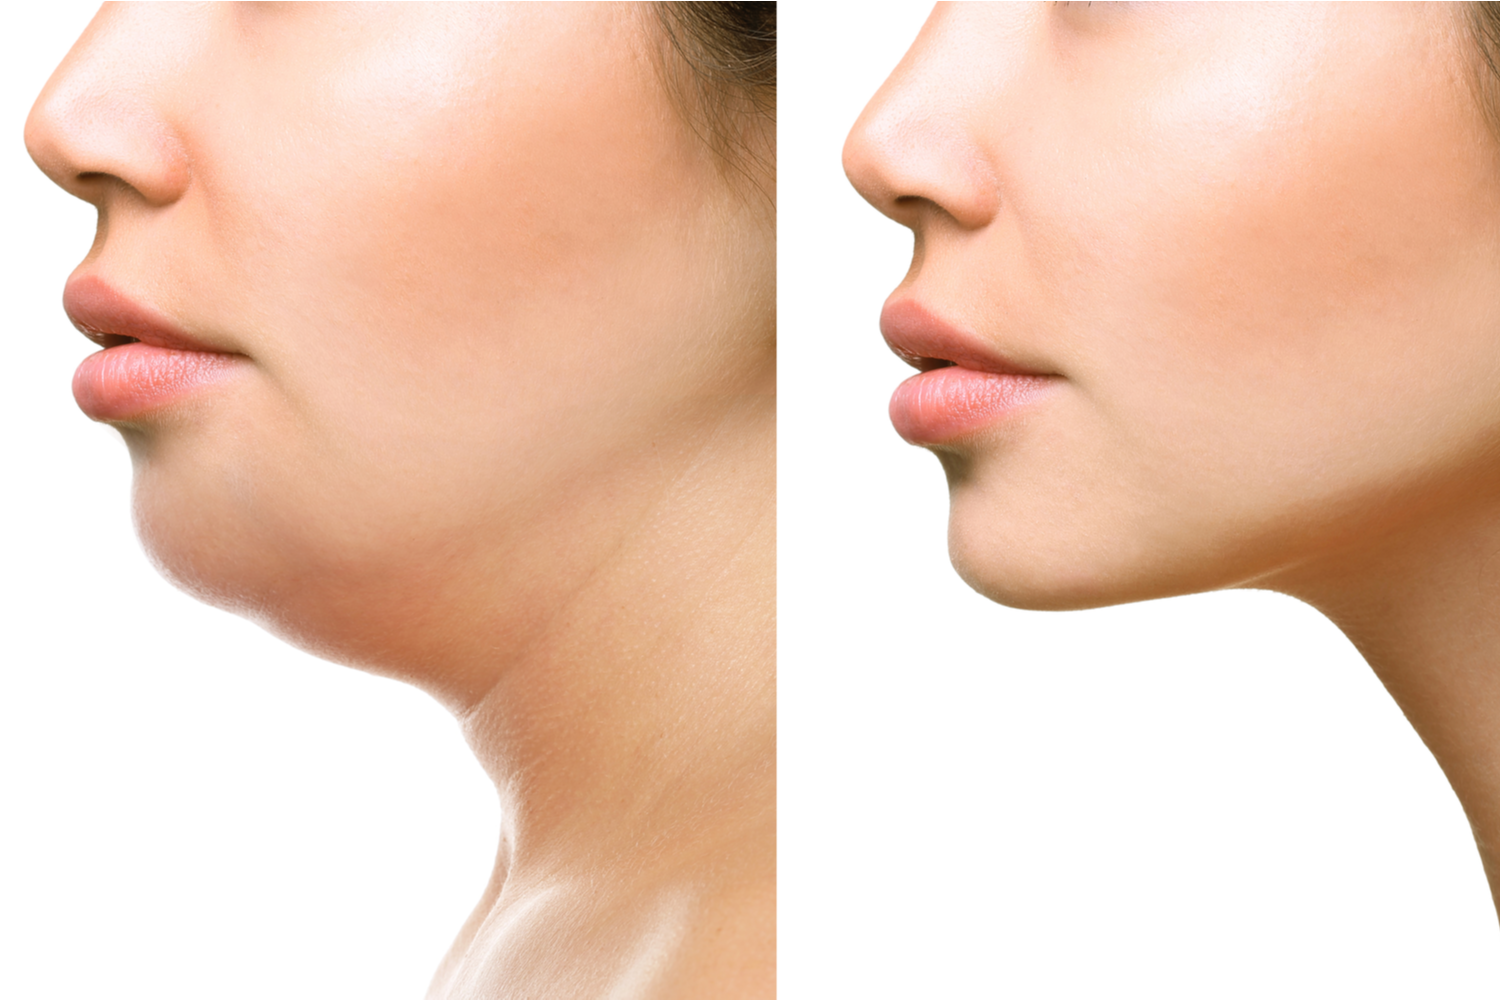 Fixing a Double Chin With Kybella